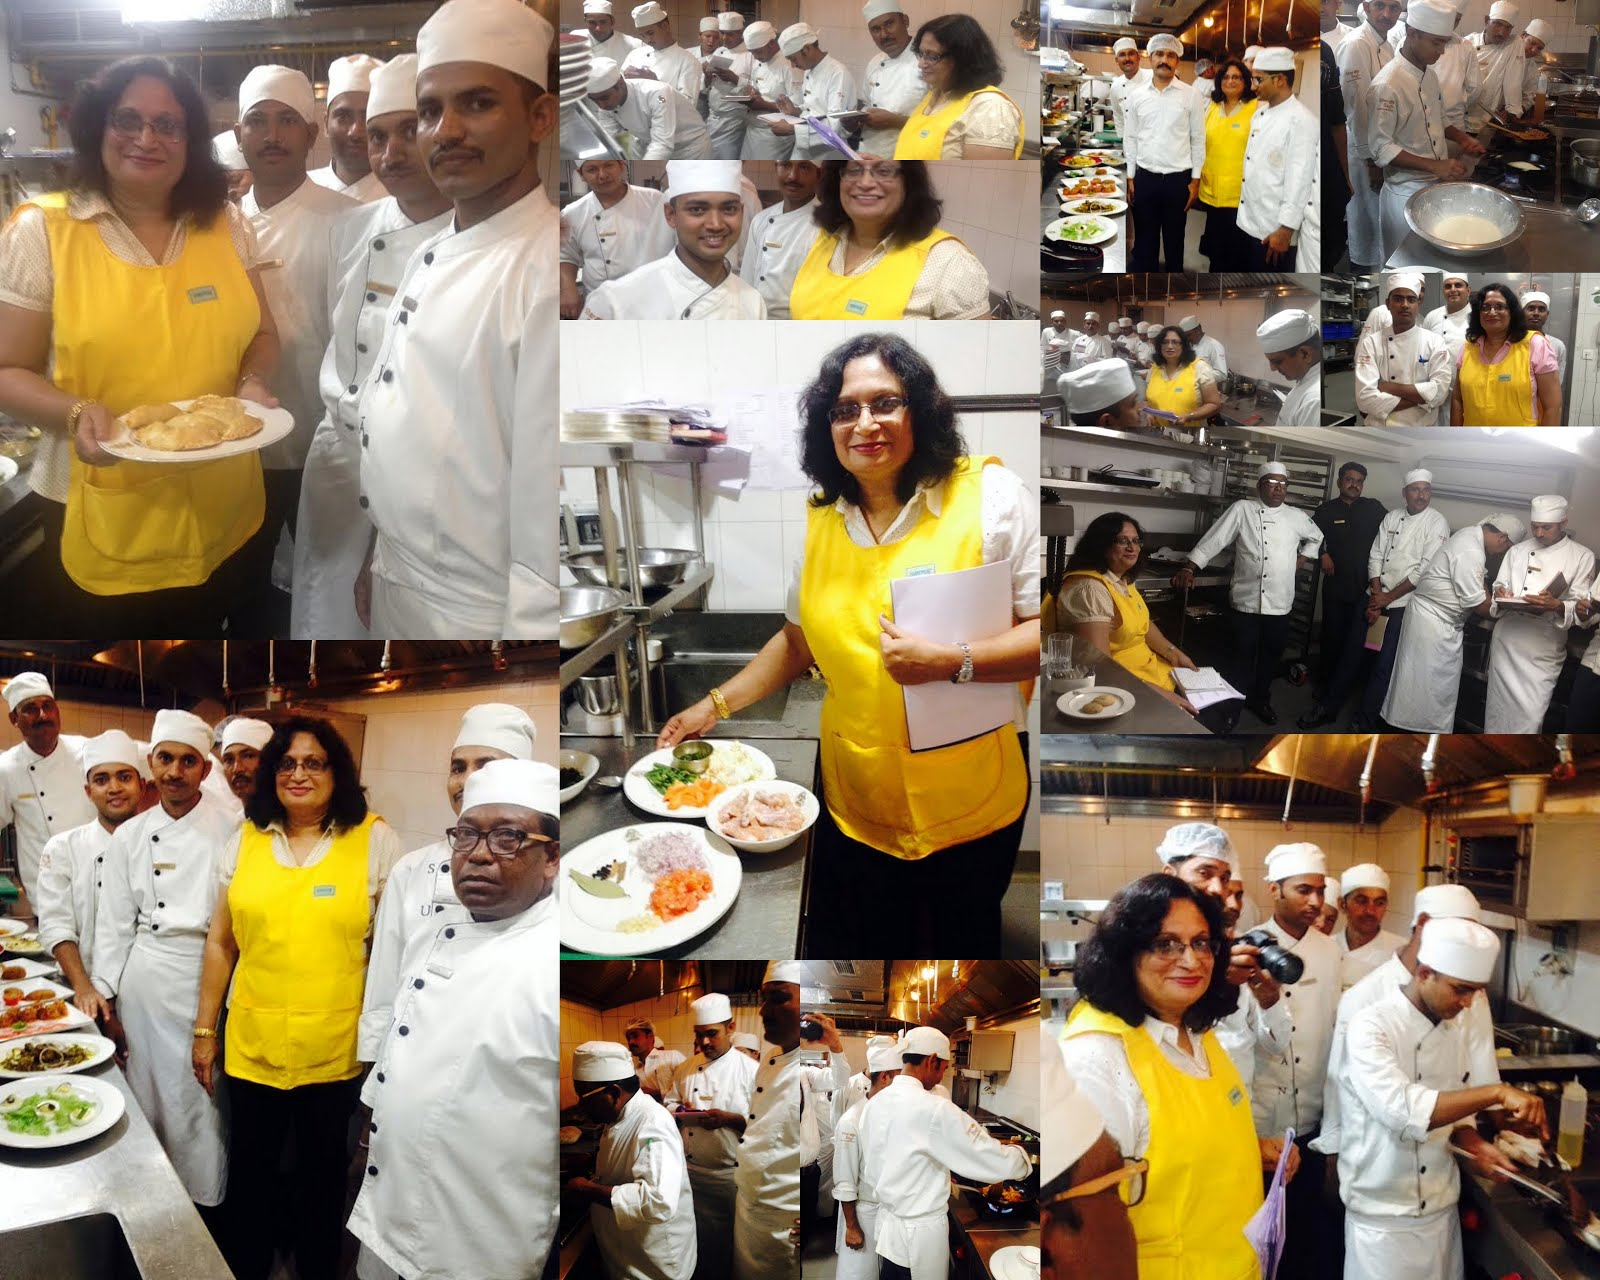 Cooking Workshop on Anglo-Indian Cuisine at the Raj Mahal Palace Jaipur